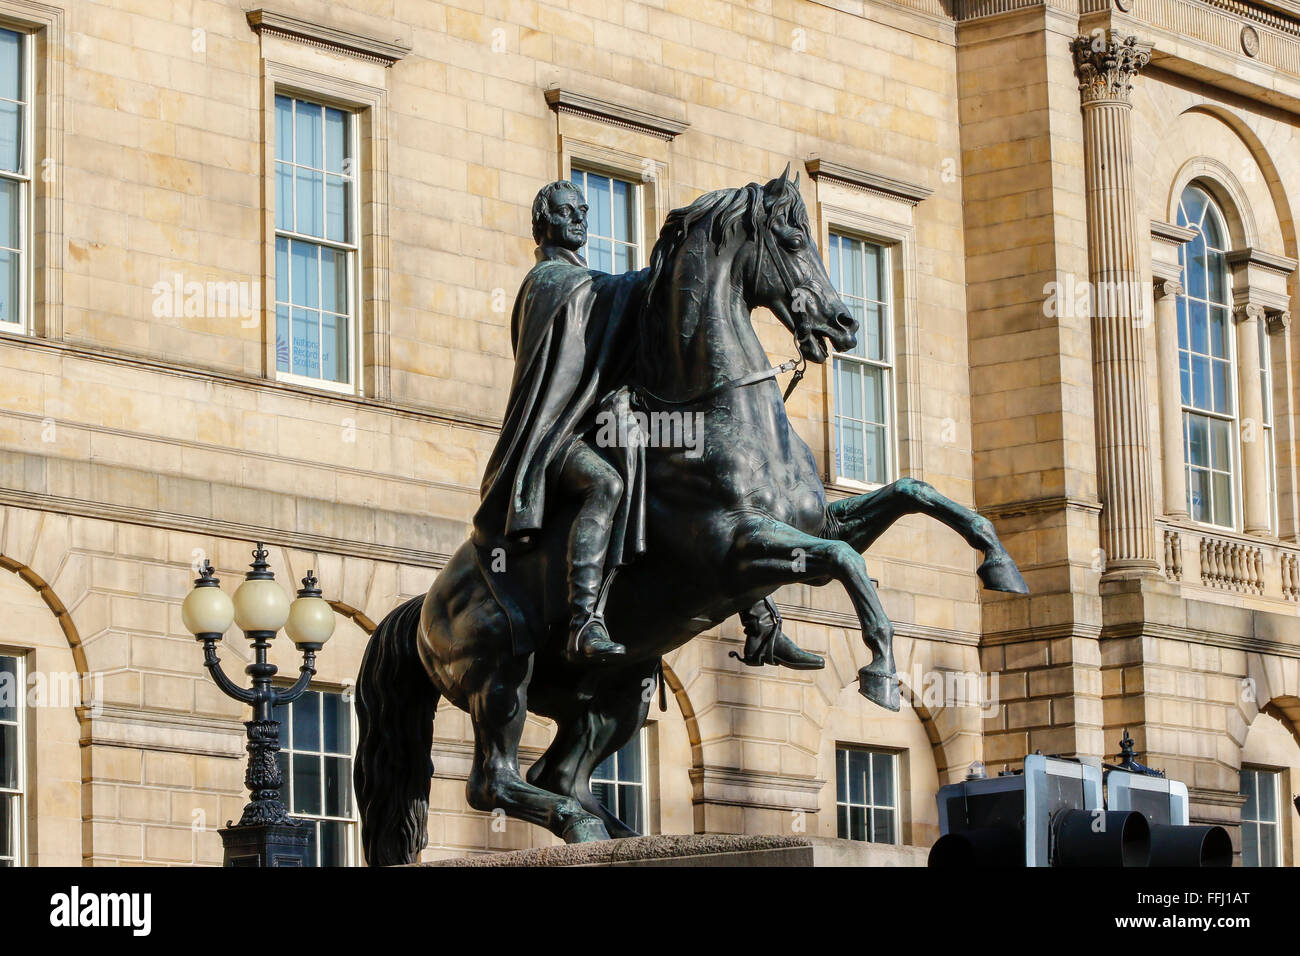 Statue of the Duke of Wellington on  horseback, Princes Street, Edinburgh, Scotland, UK - Stock Image